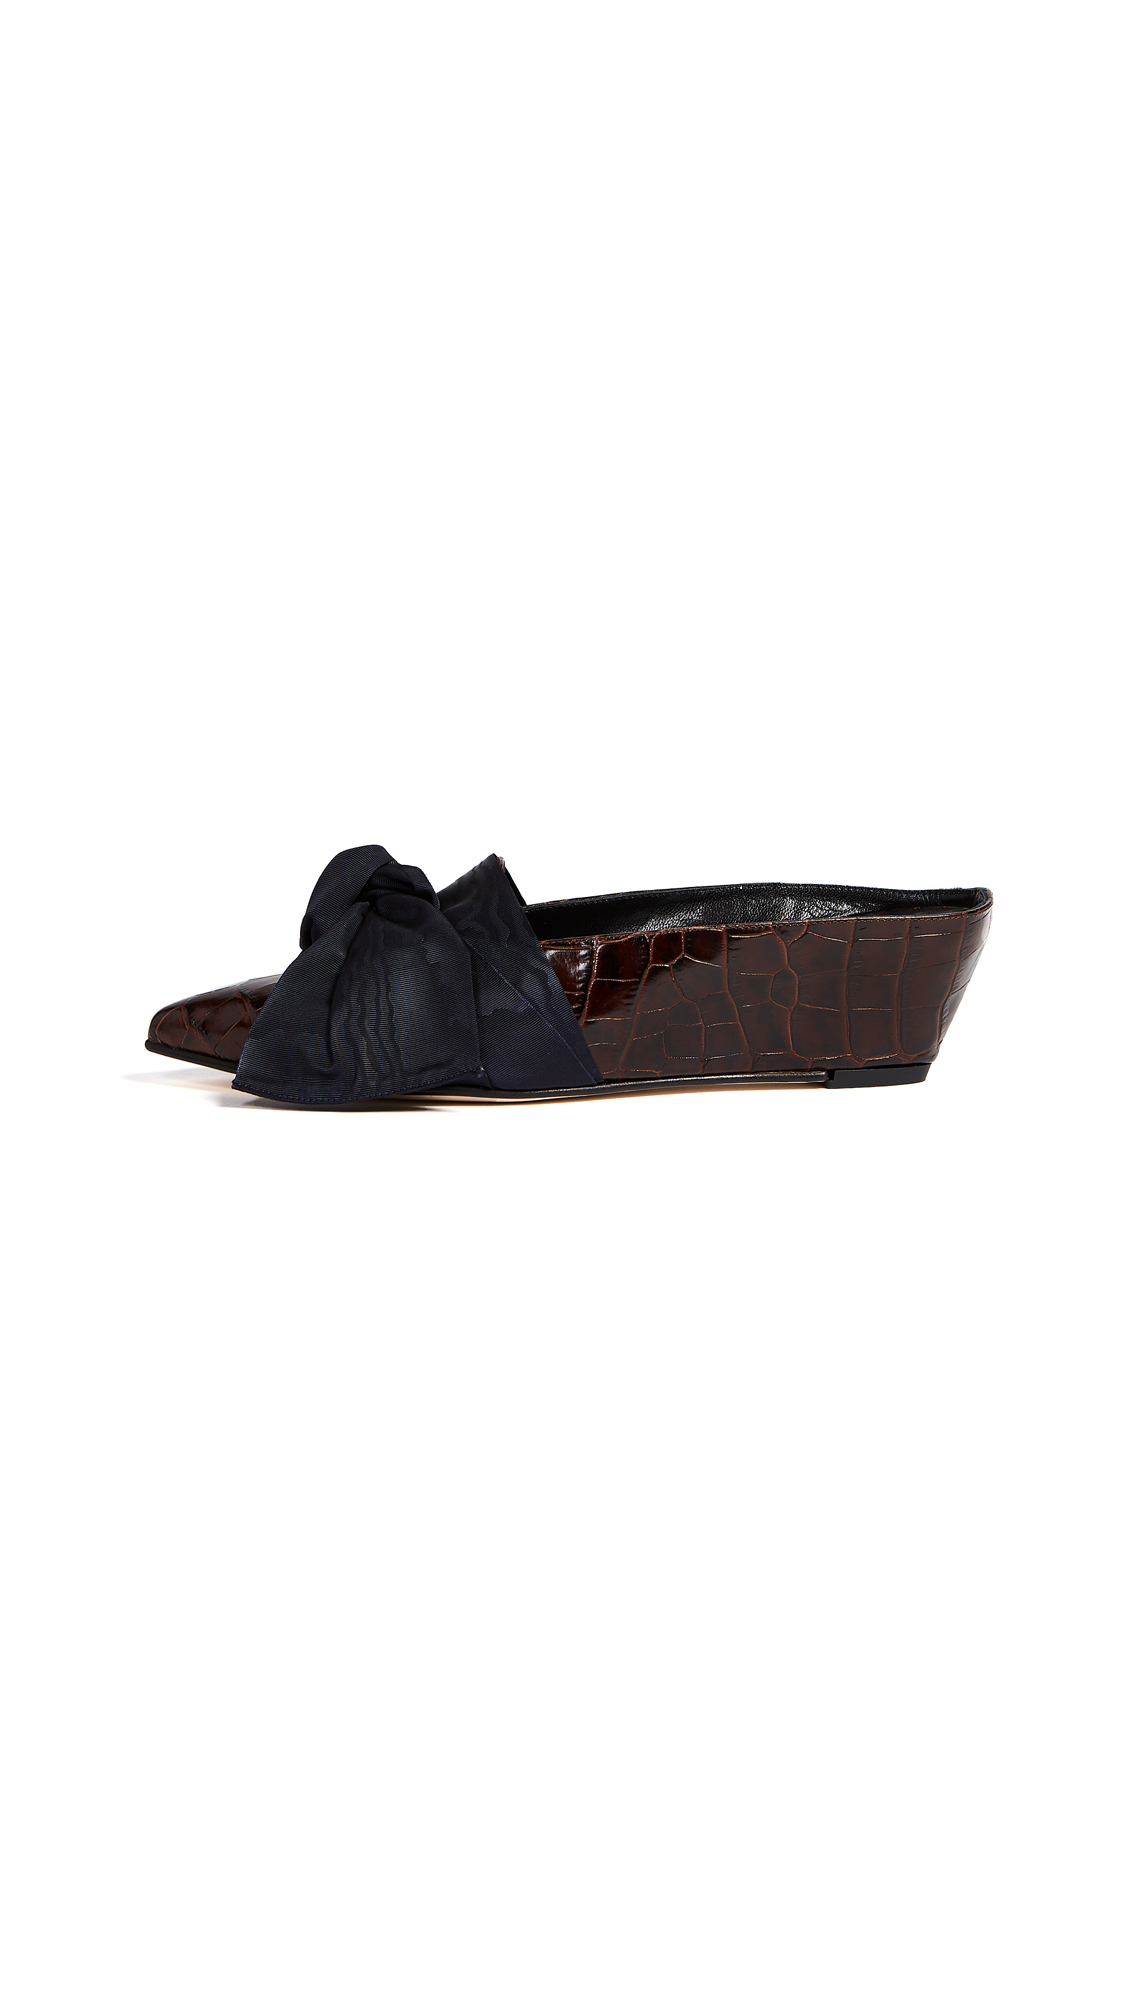 Trademark Adrien Tie Mules - Chocolate Brown